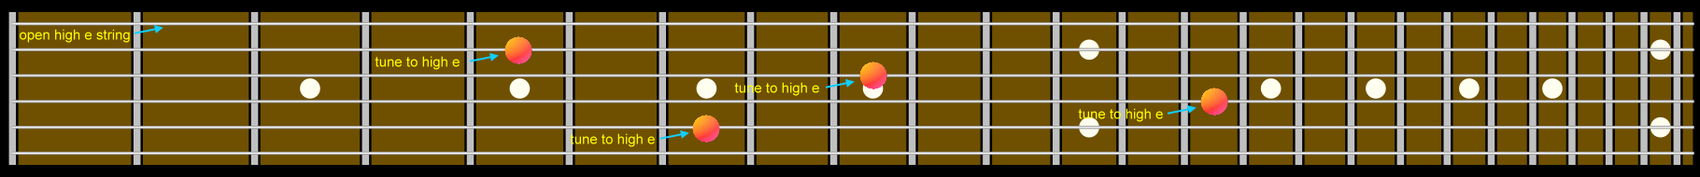 Guitar Fretboard Tuning Diagram Using The Open High E String As The Reference Note.png